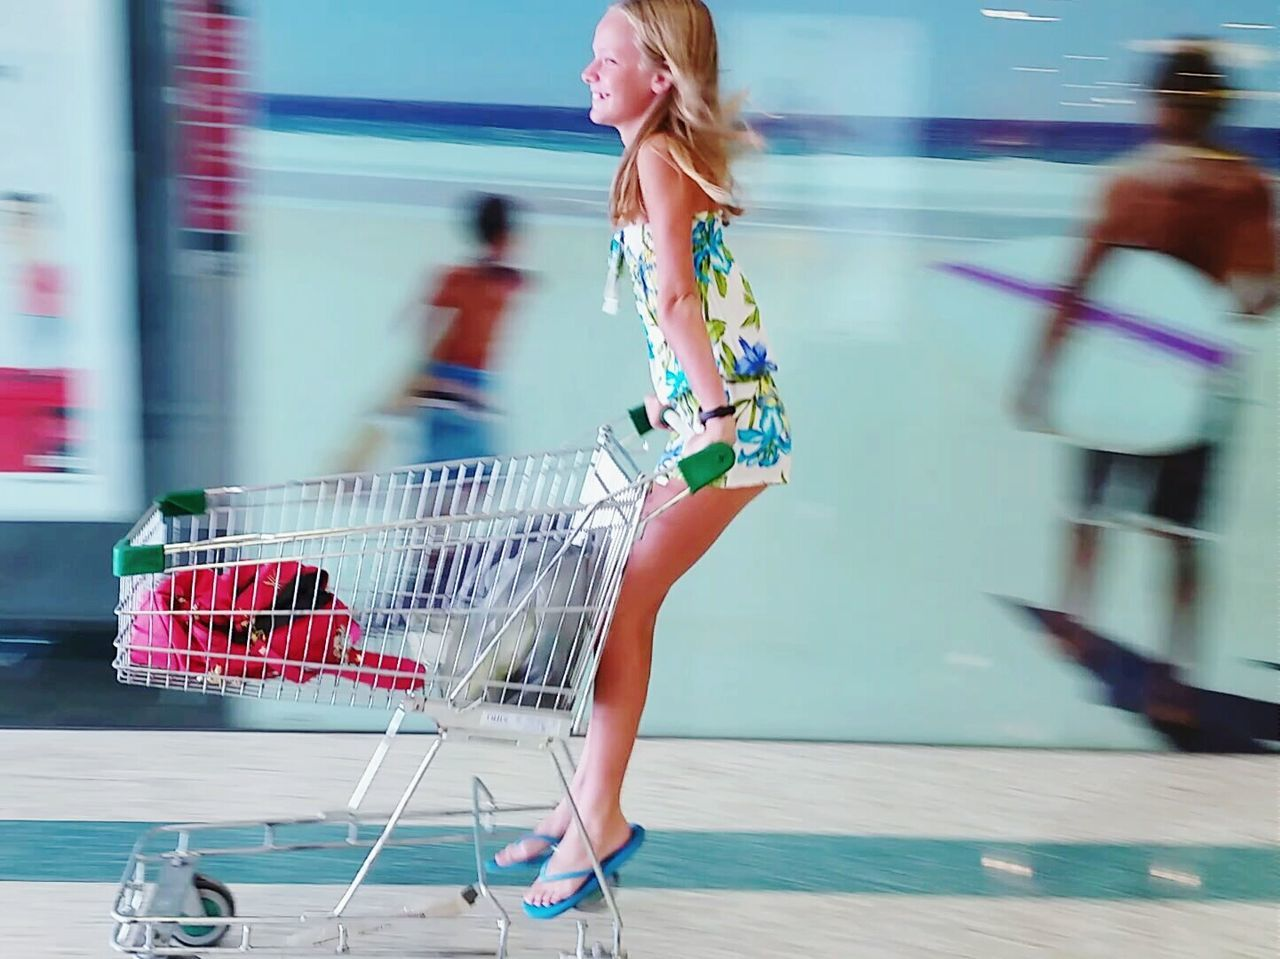 Ahhh the joy of youth Teenager Shopping Trolley Taking Photos Check This Out Enjoying Life Happiness Showing Why I Could Be An Open Editor Hanging Out Deceptively Simple